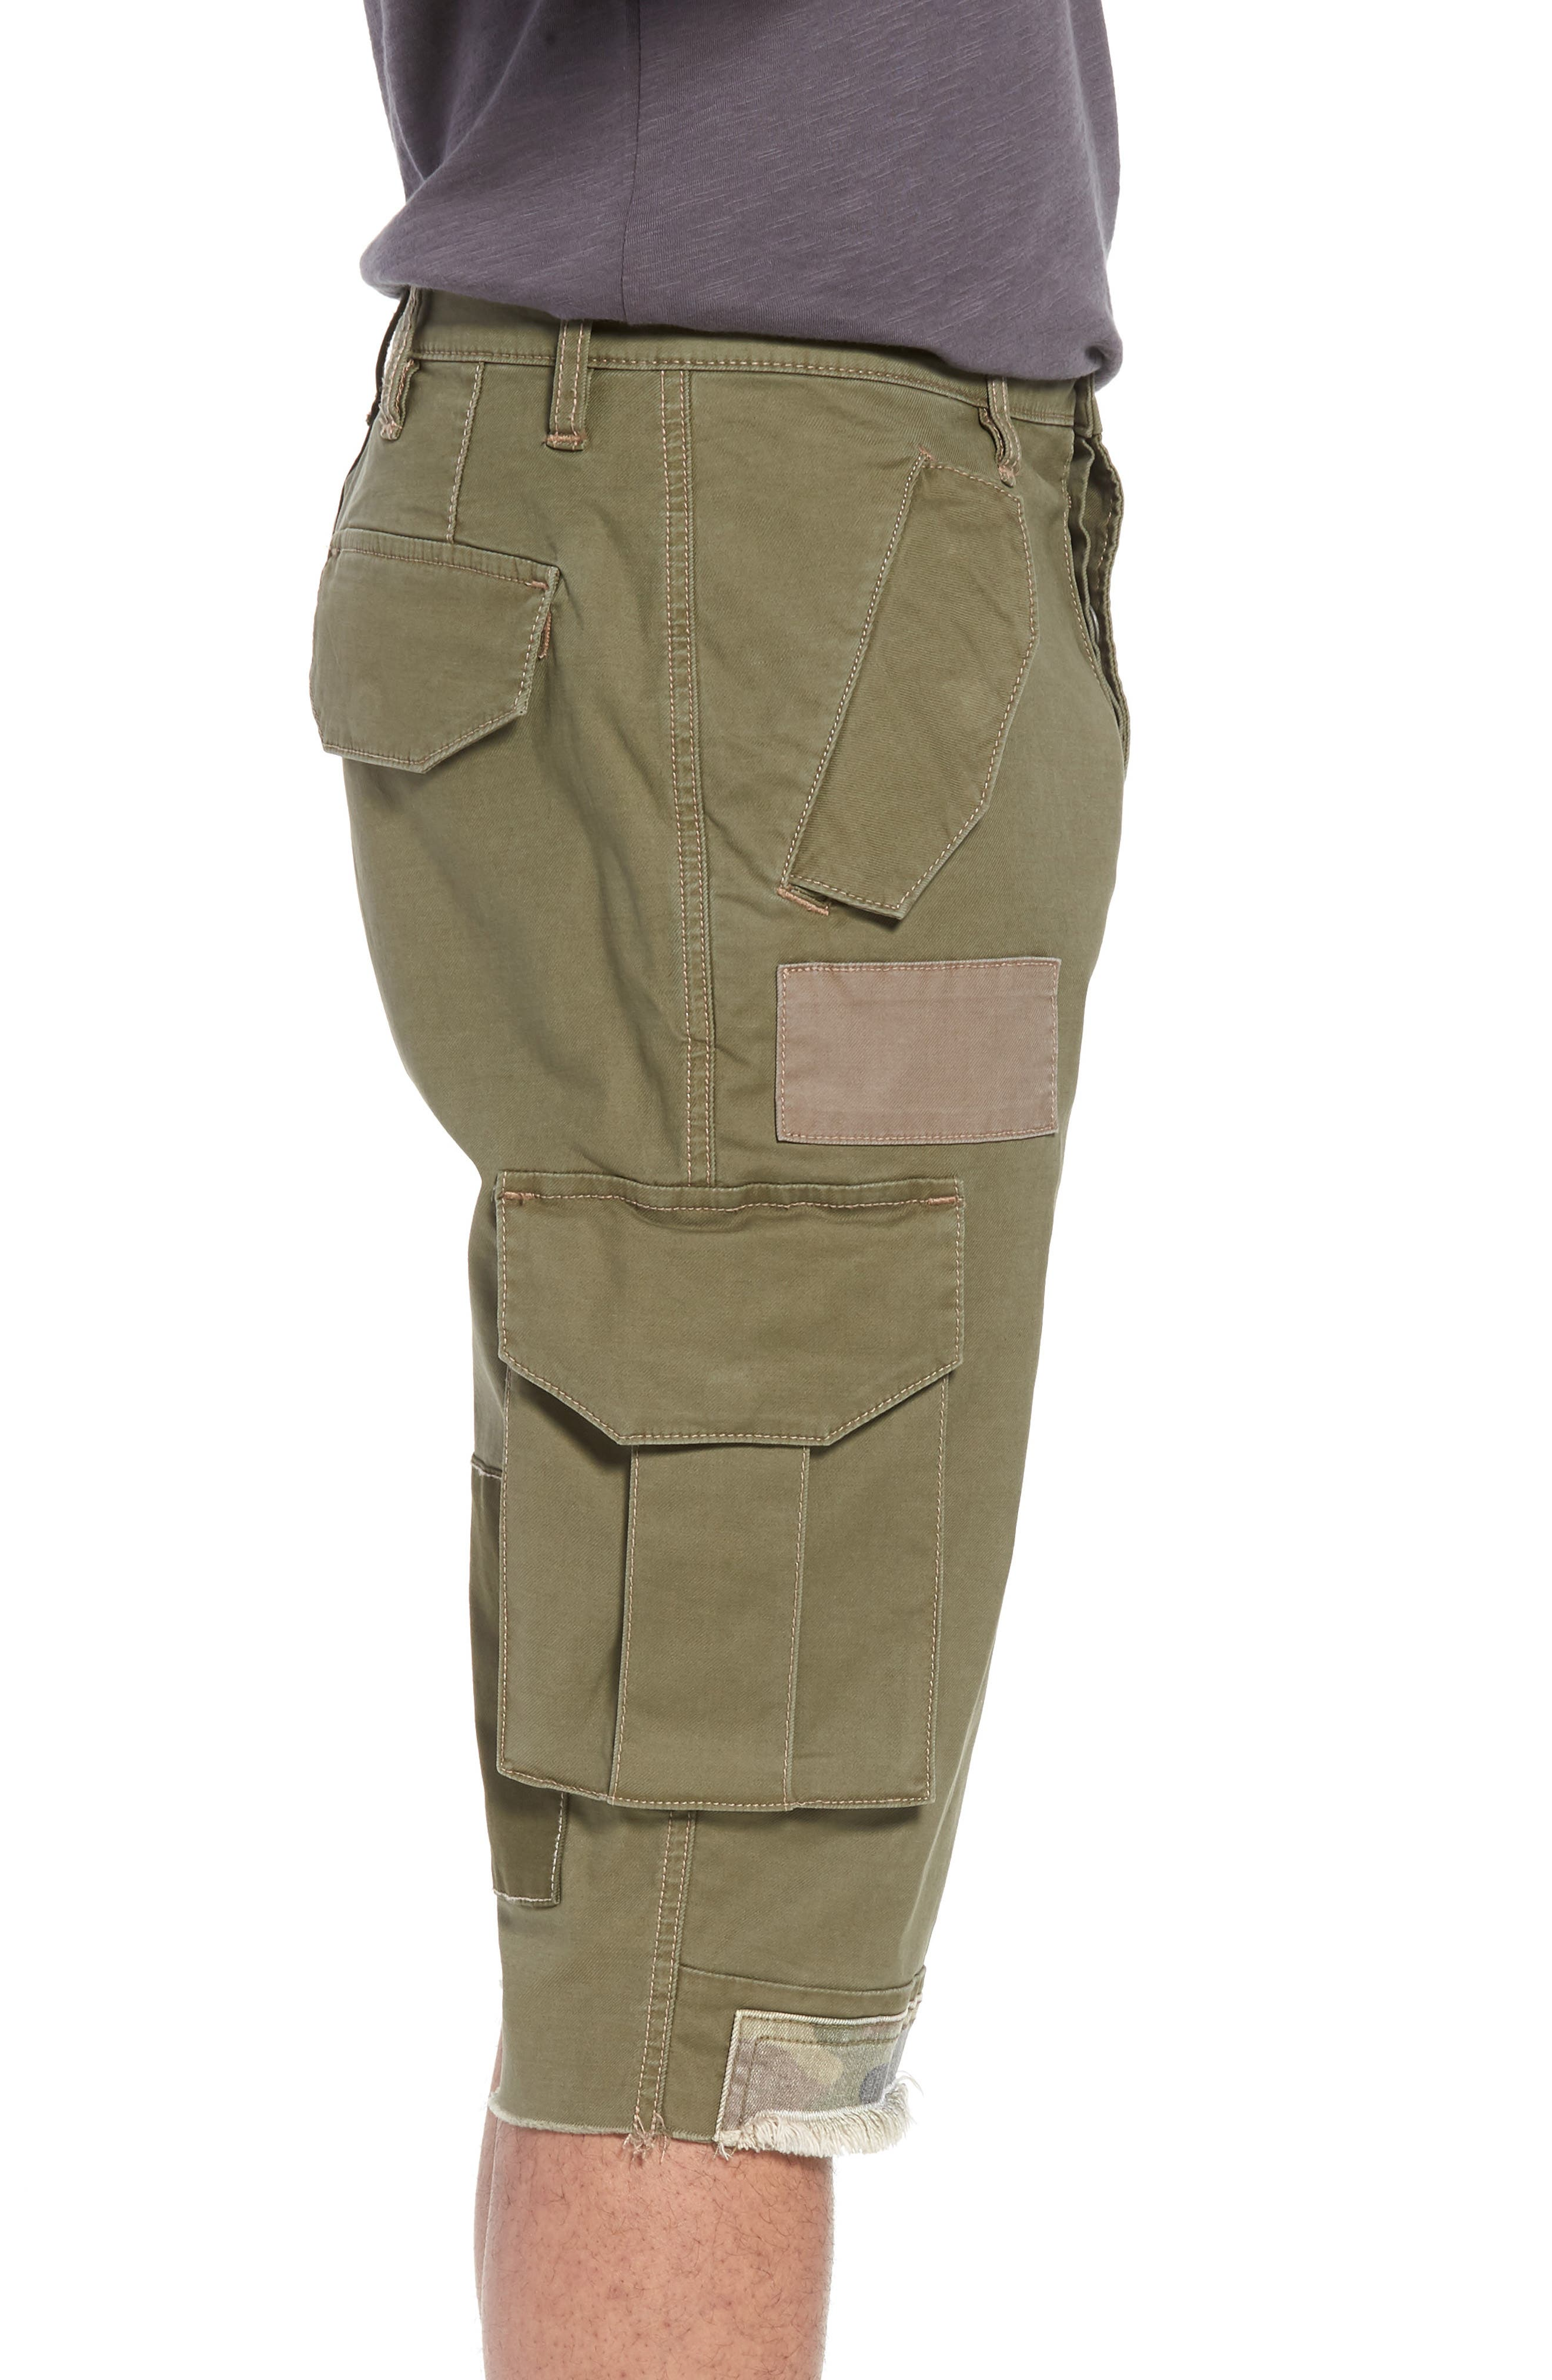 Slim Fit Cargo Shorts,                             Alternate thumbnail 3, color,                             Army Green 2